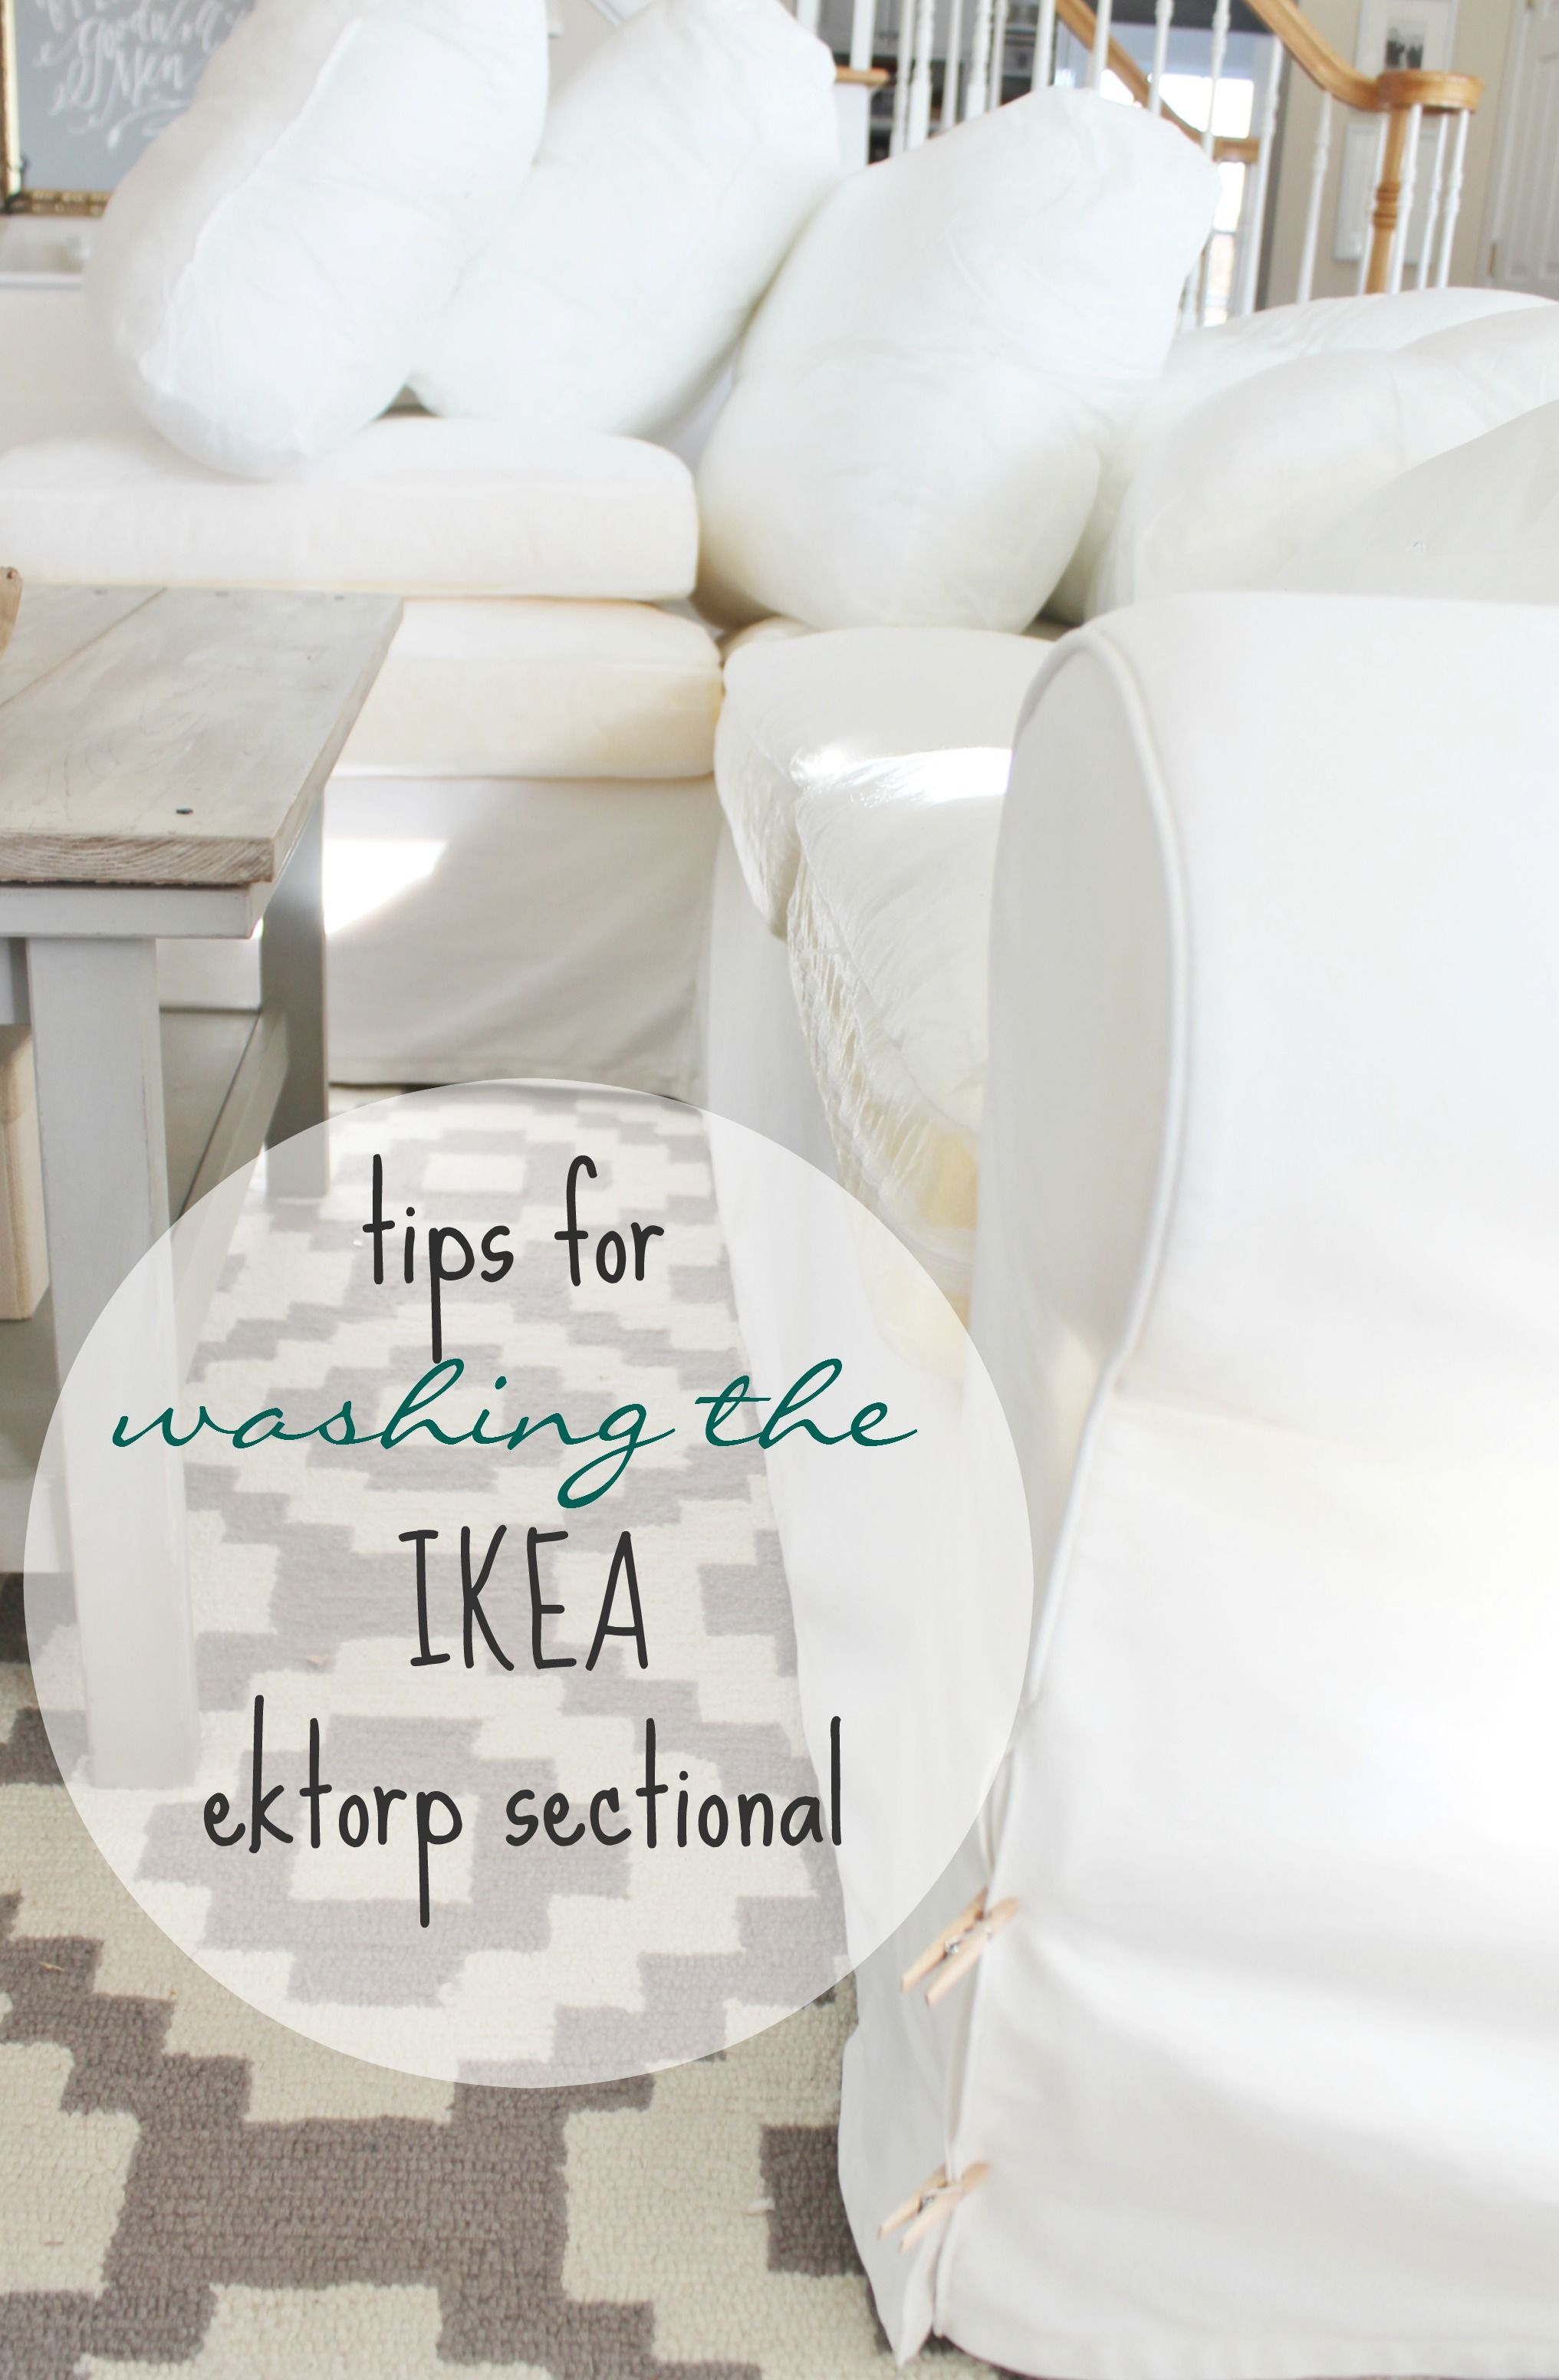 washing ikea chair covers white linen dining room my ektorp slipcover sectional 2 years later